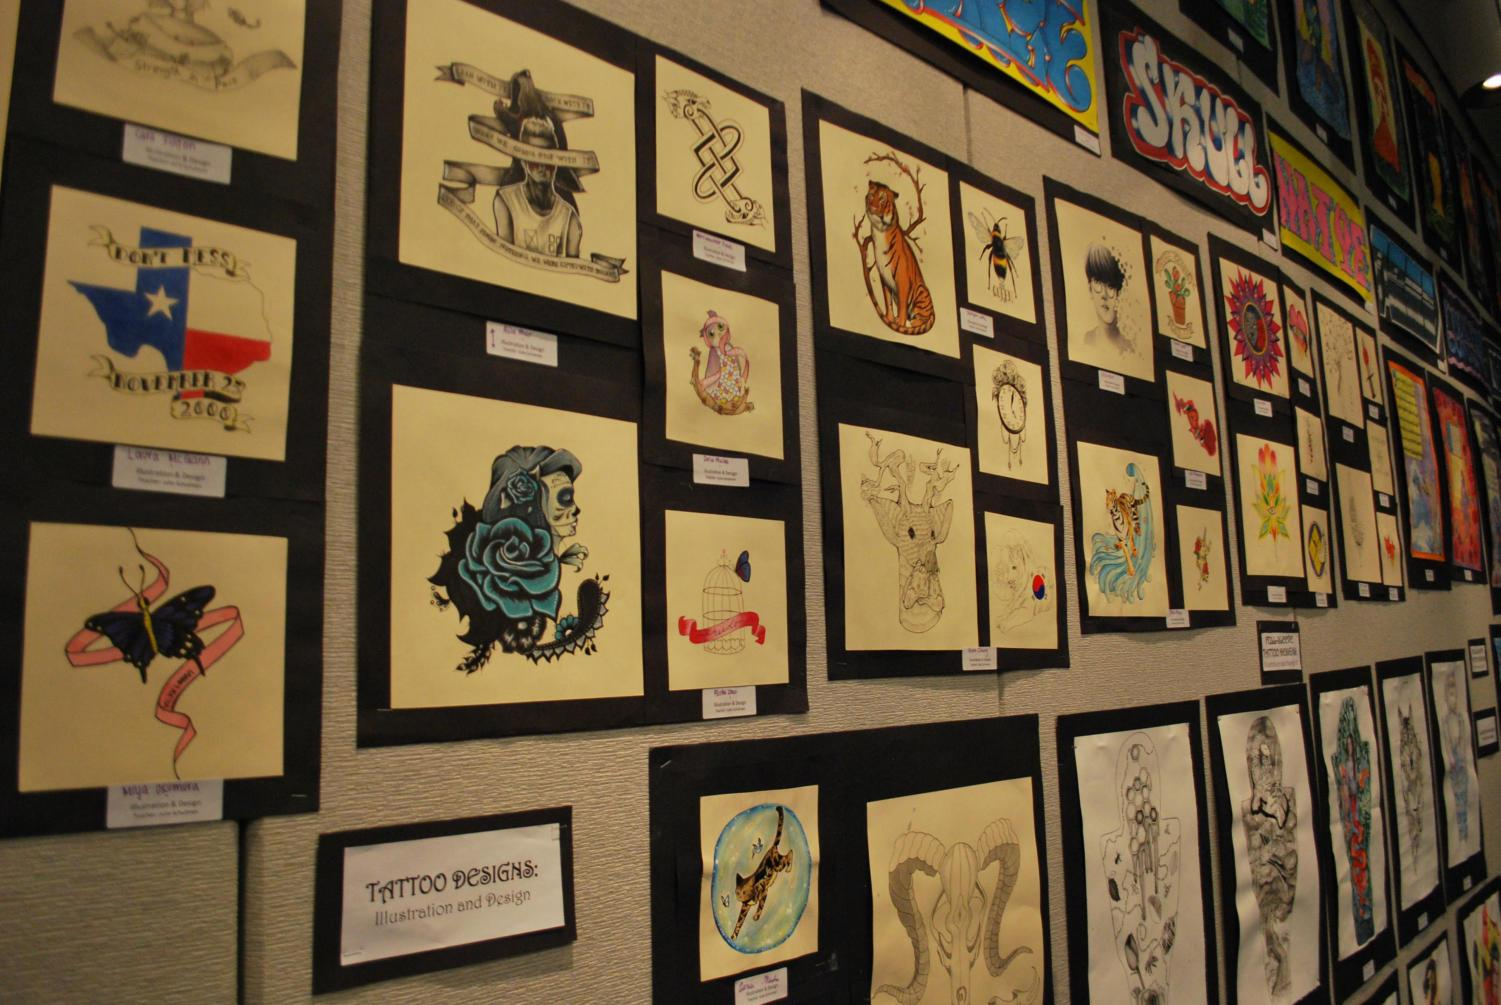 Students+in+Illustration+and+Design+produced+tattoo+designs+present+at+the+Art+Show.